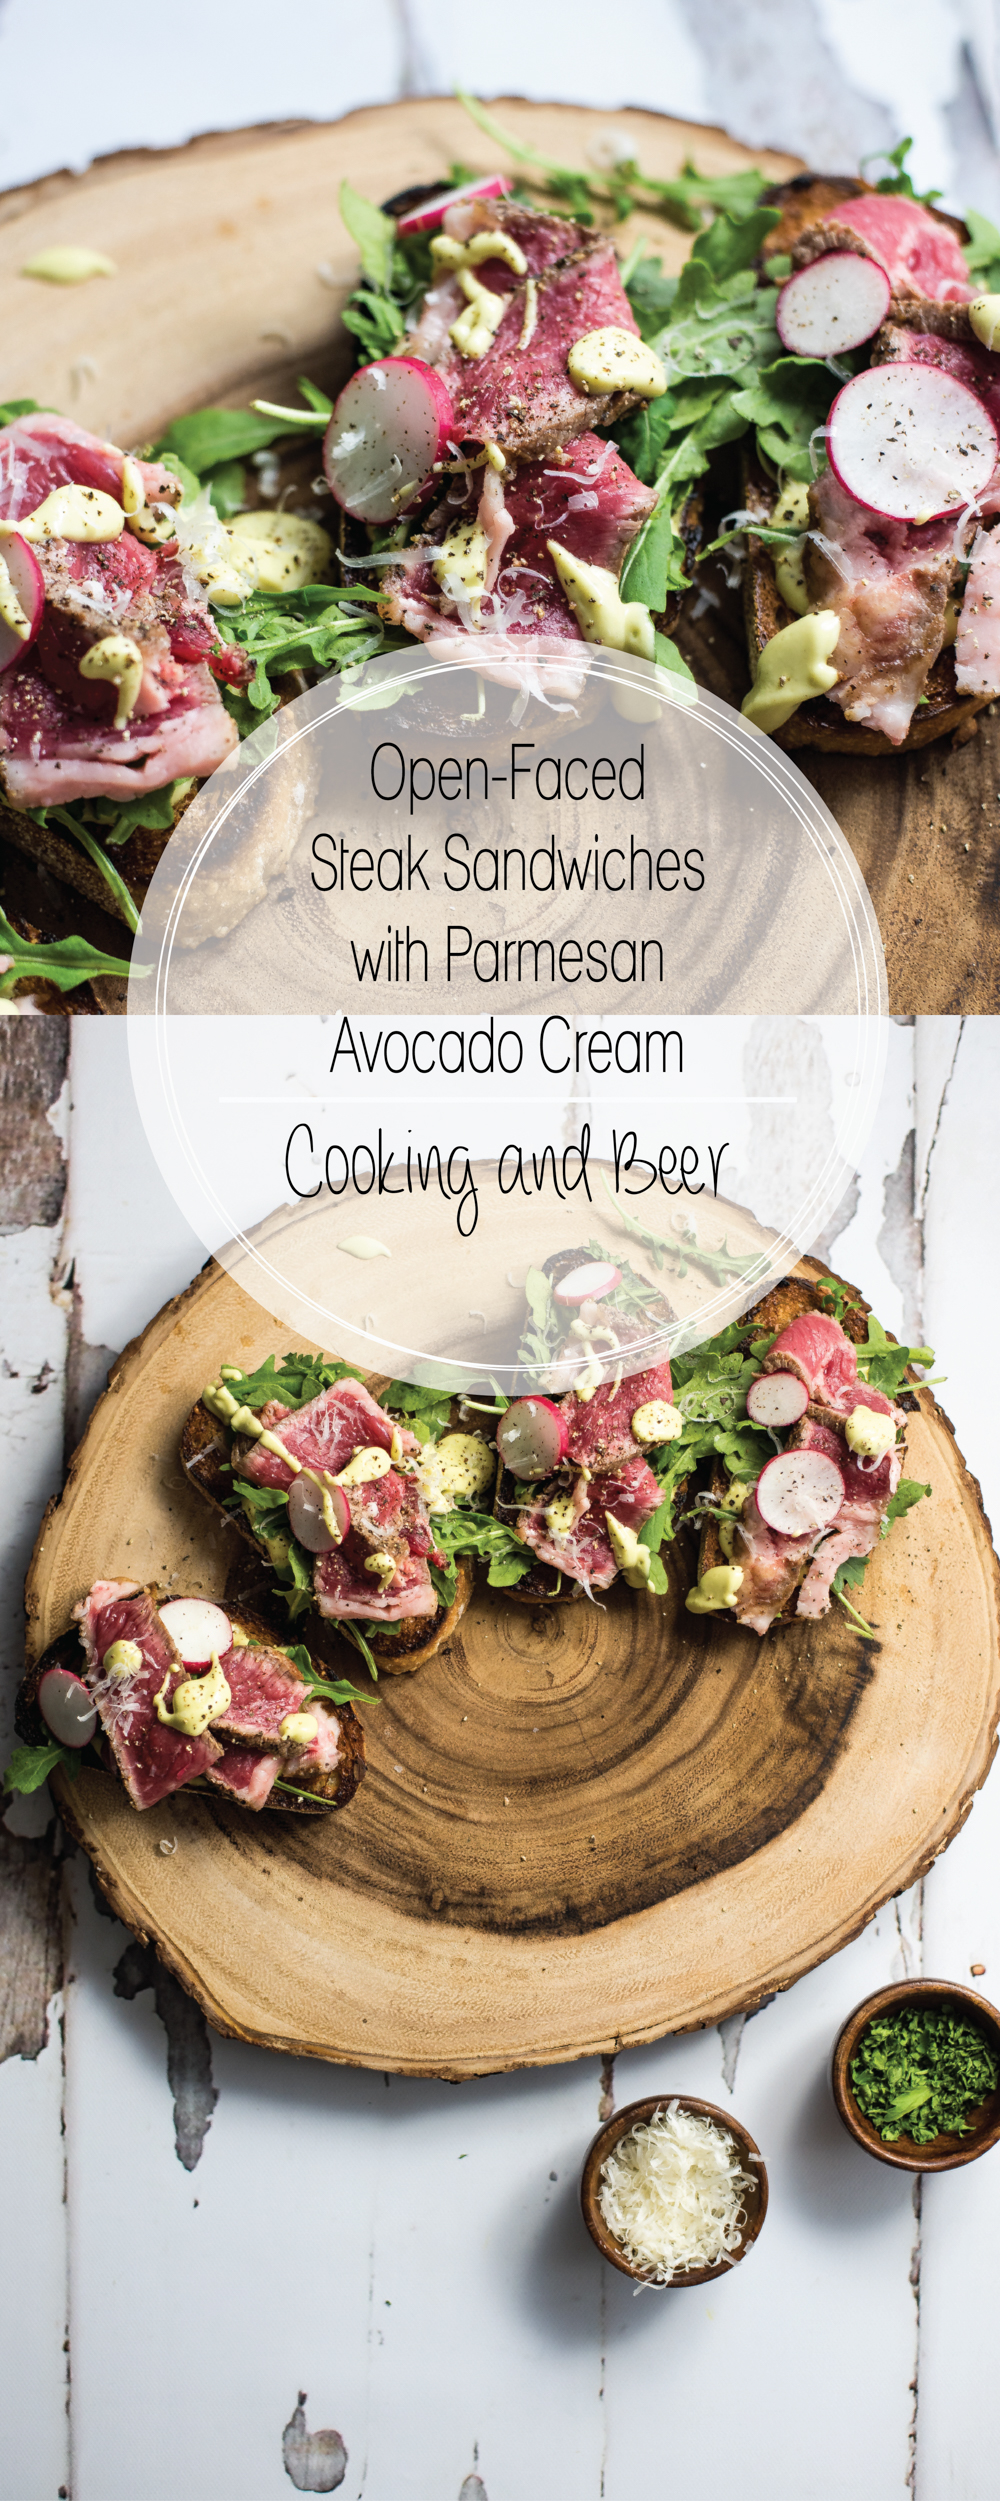 Open-Faced Steak Sandwiches with Parmesan Avocado Cream are the perfect appetizer or quick lunch recipe. Serve them at your next get together!